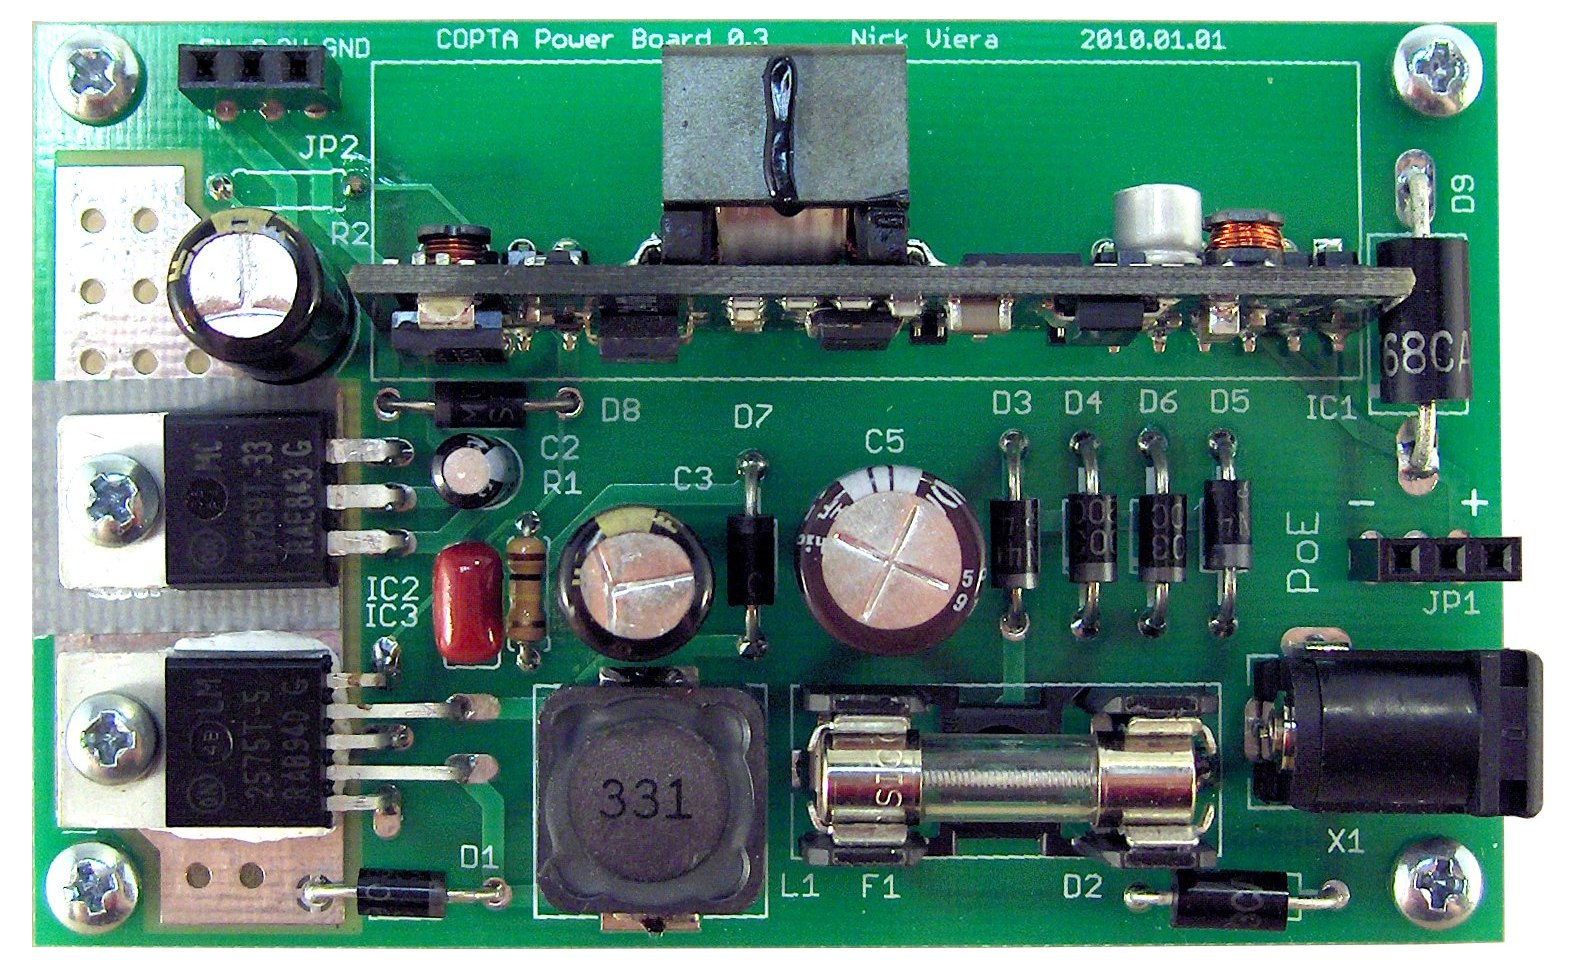 lg_pcb_stuffed Wall Wart Schematic on battery eliminator, power supply, dc to dc converter, switched-mode power supply, power supply unit, wall ac dc power supply schematic, wall warts power packs, element tv schematic,